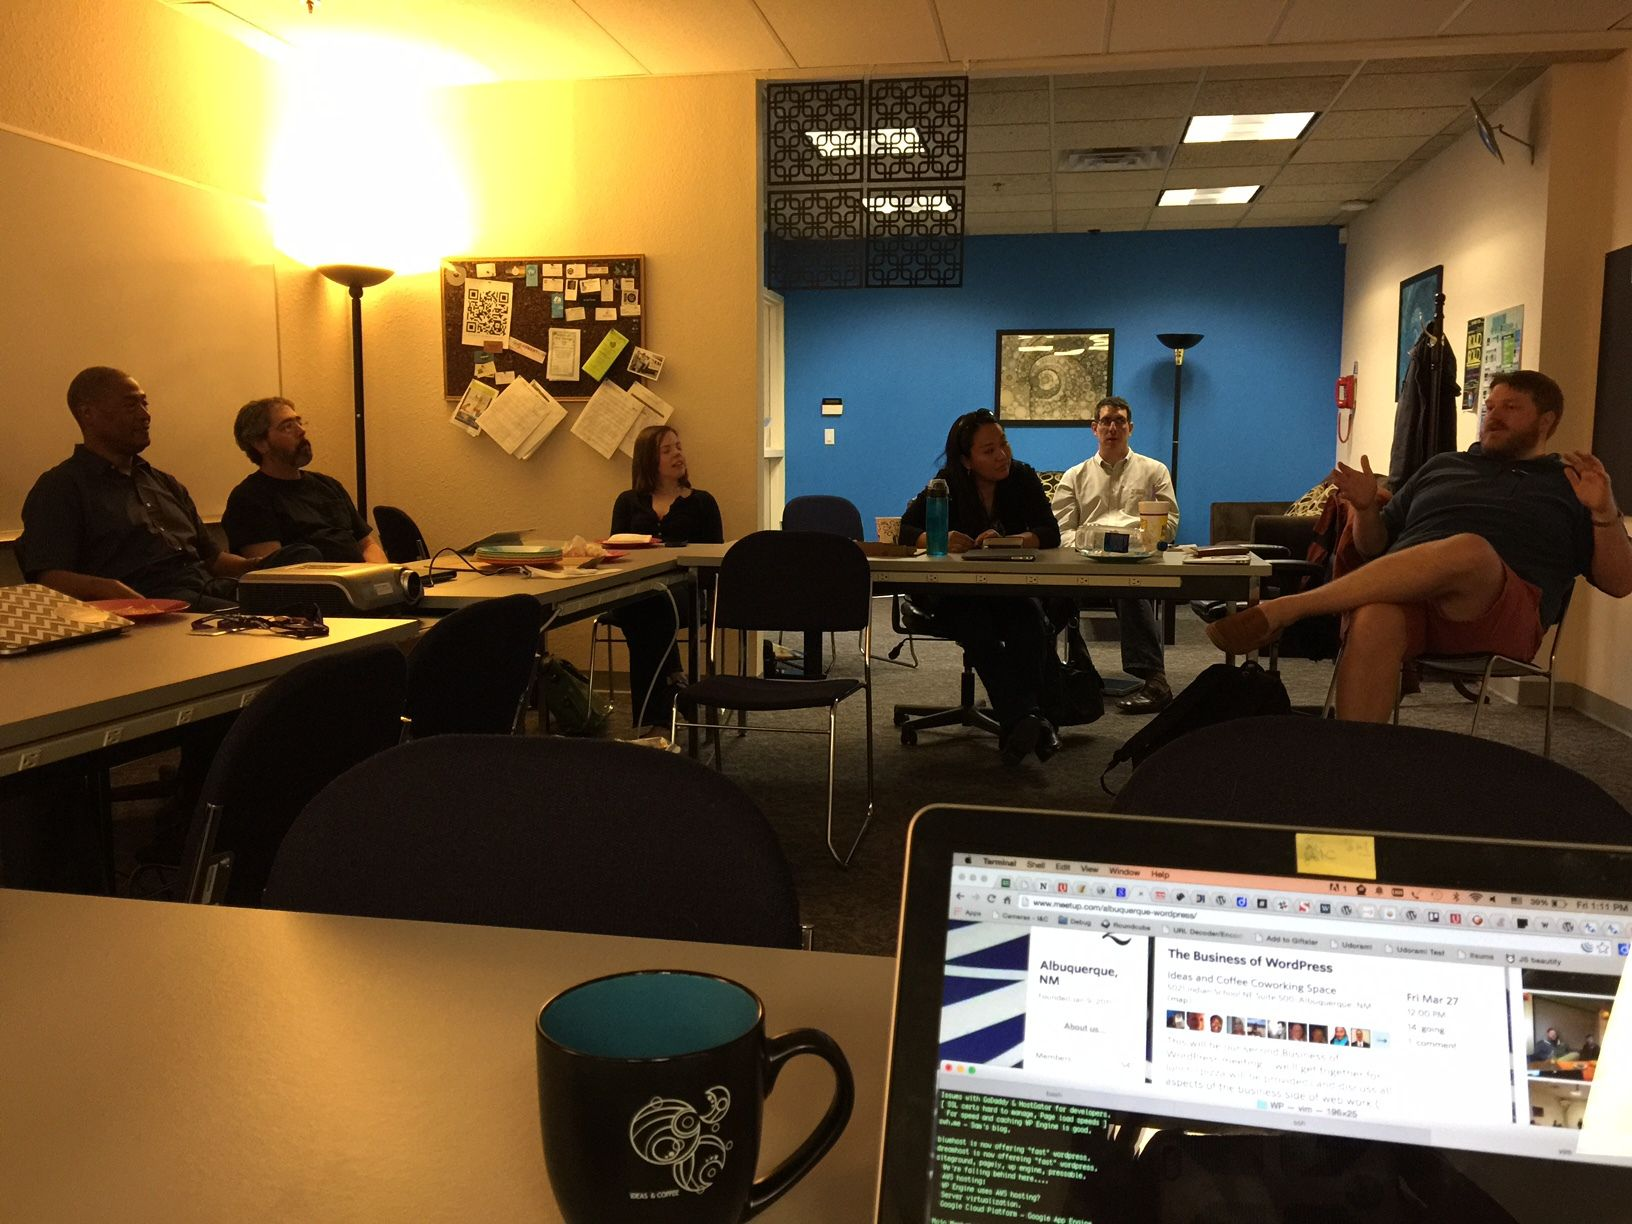 The Albuquerque WordPress User Group